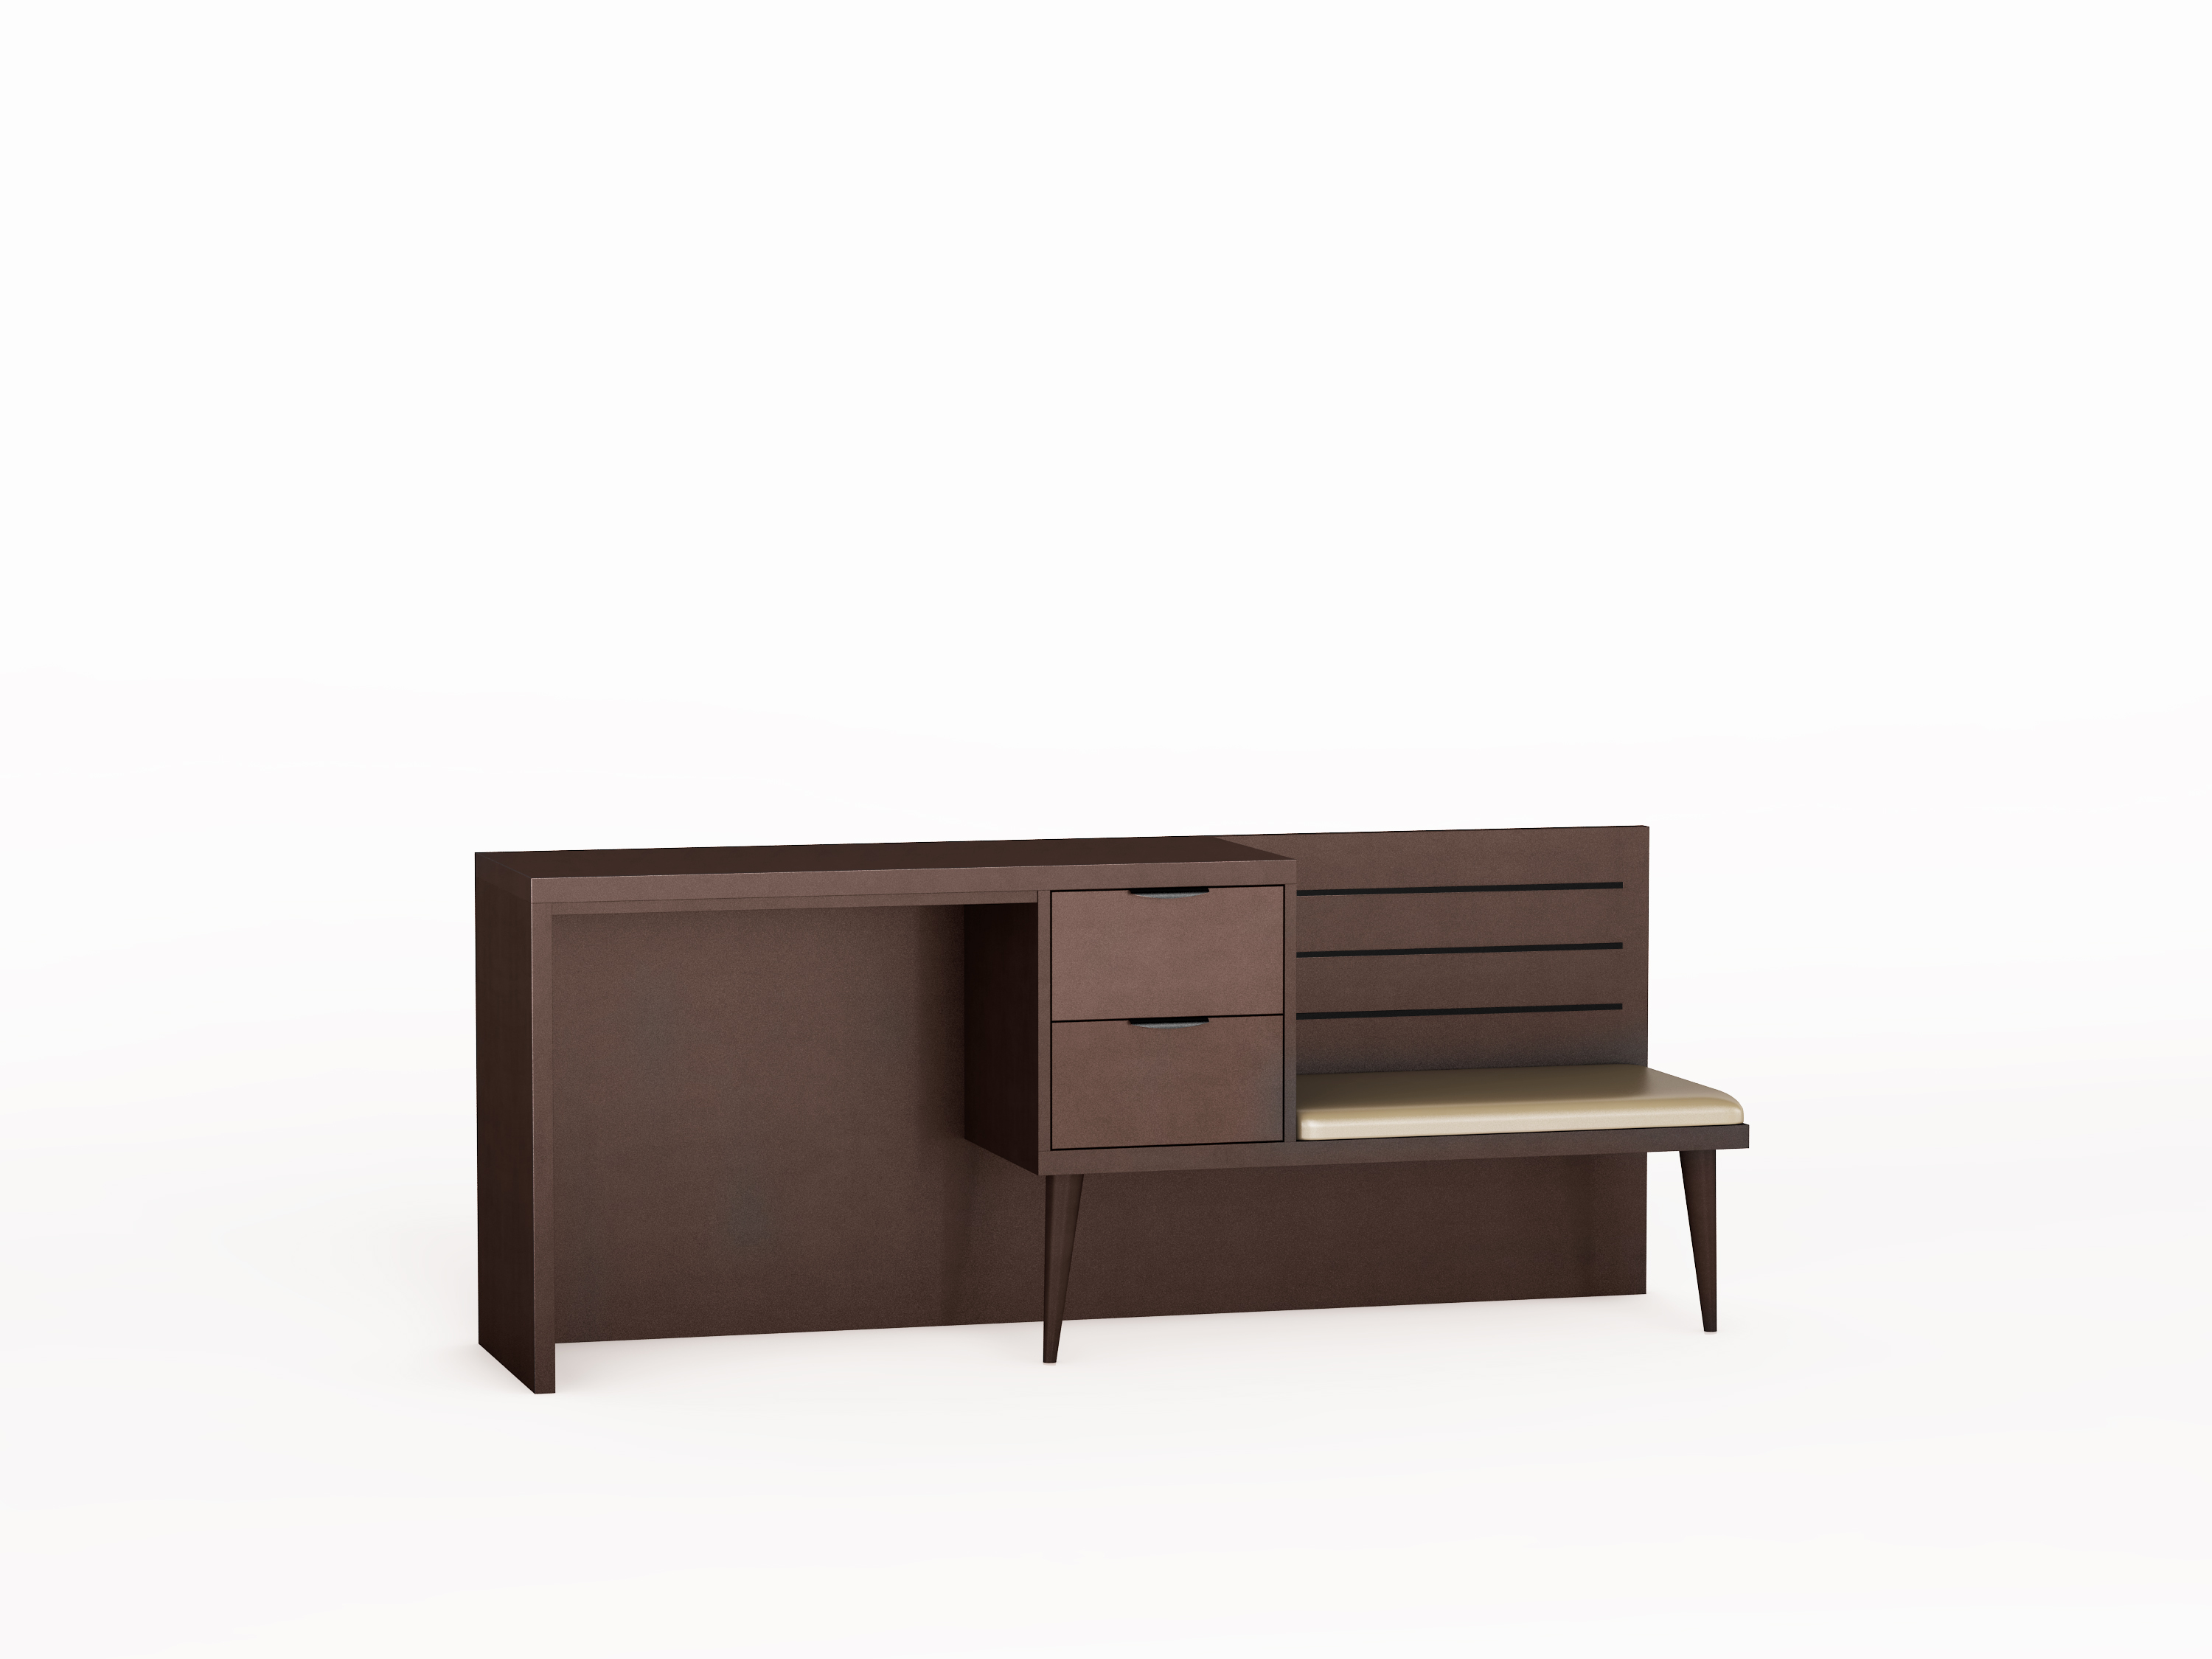 Luggage With Drawers Icon Furniture Sutton Desk Bench Combo